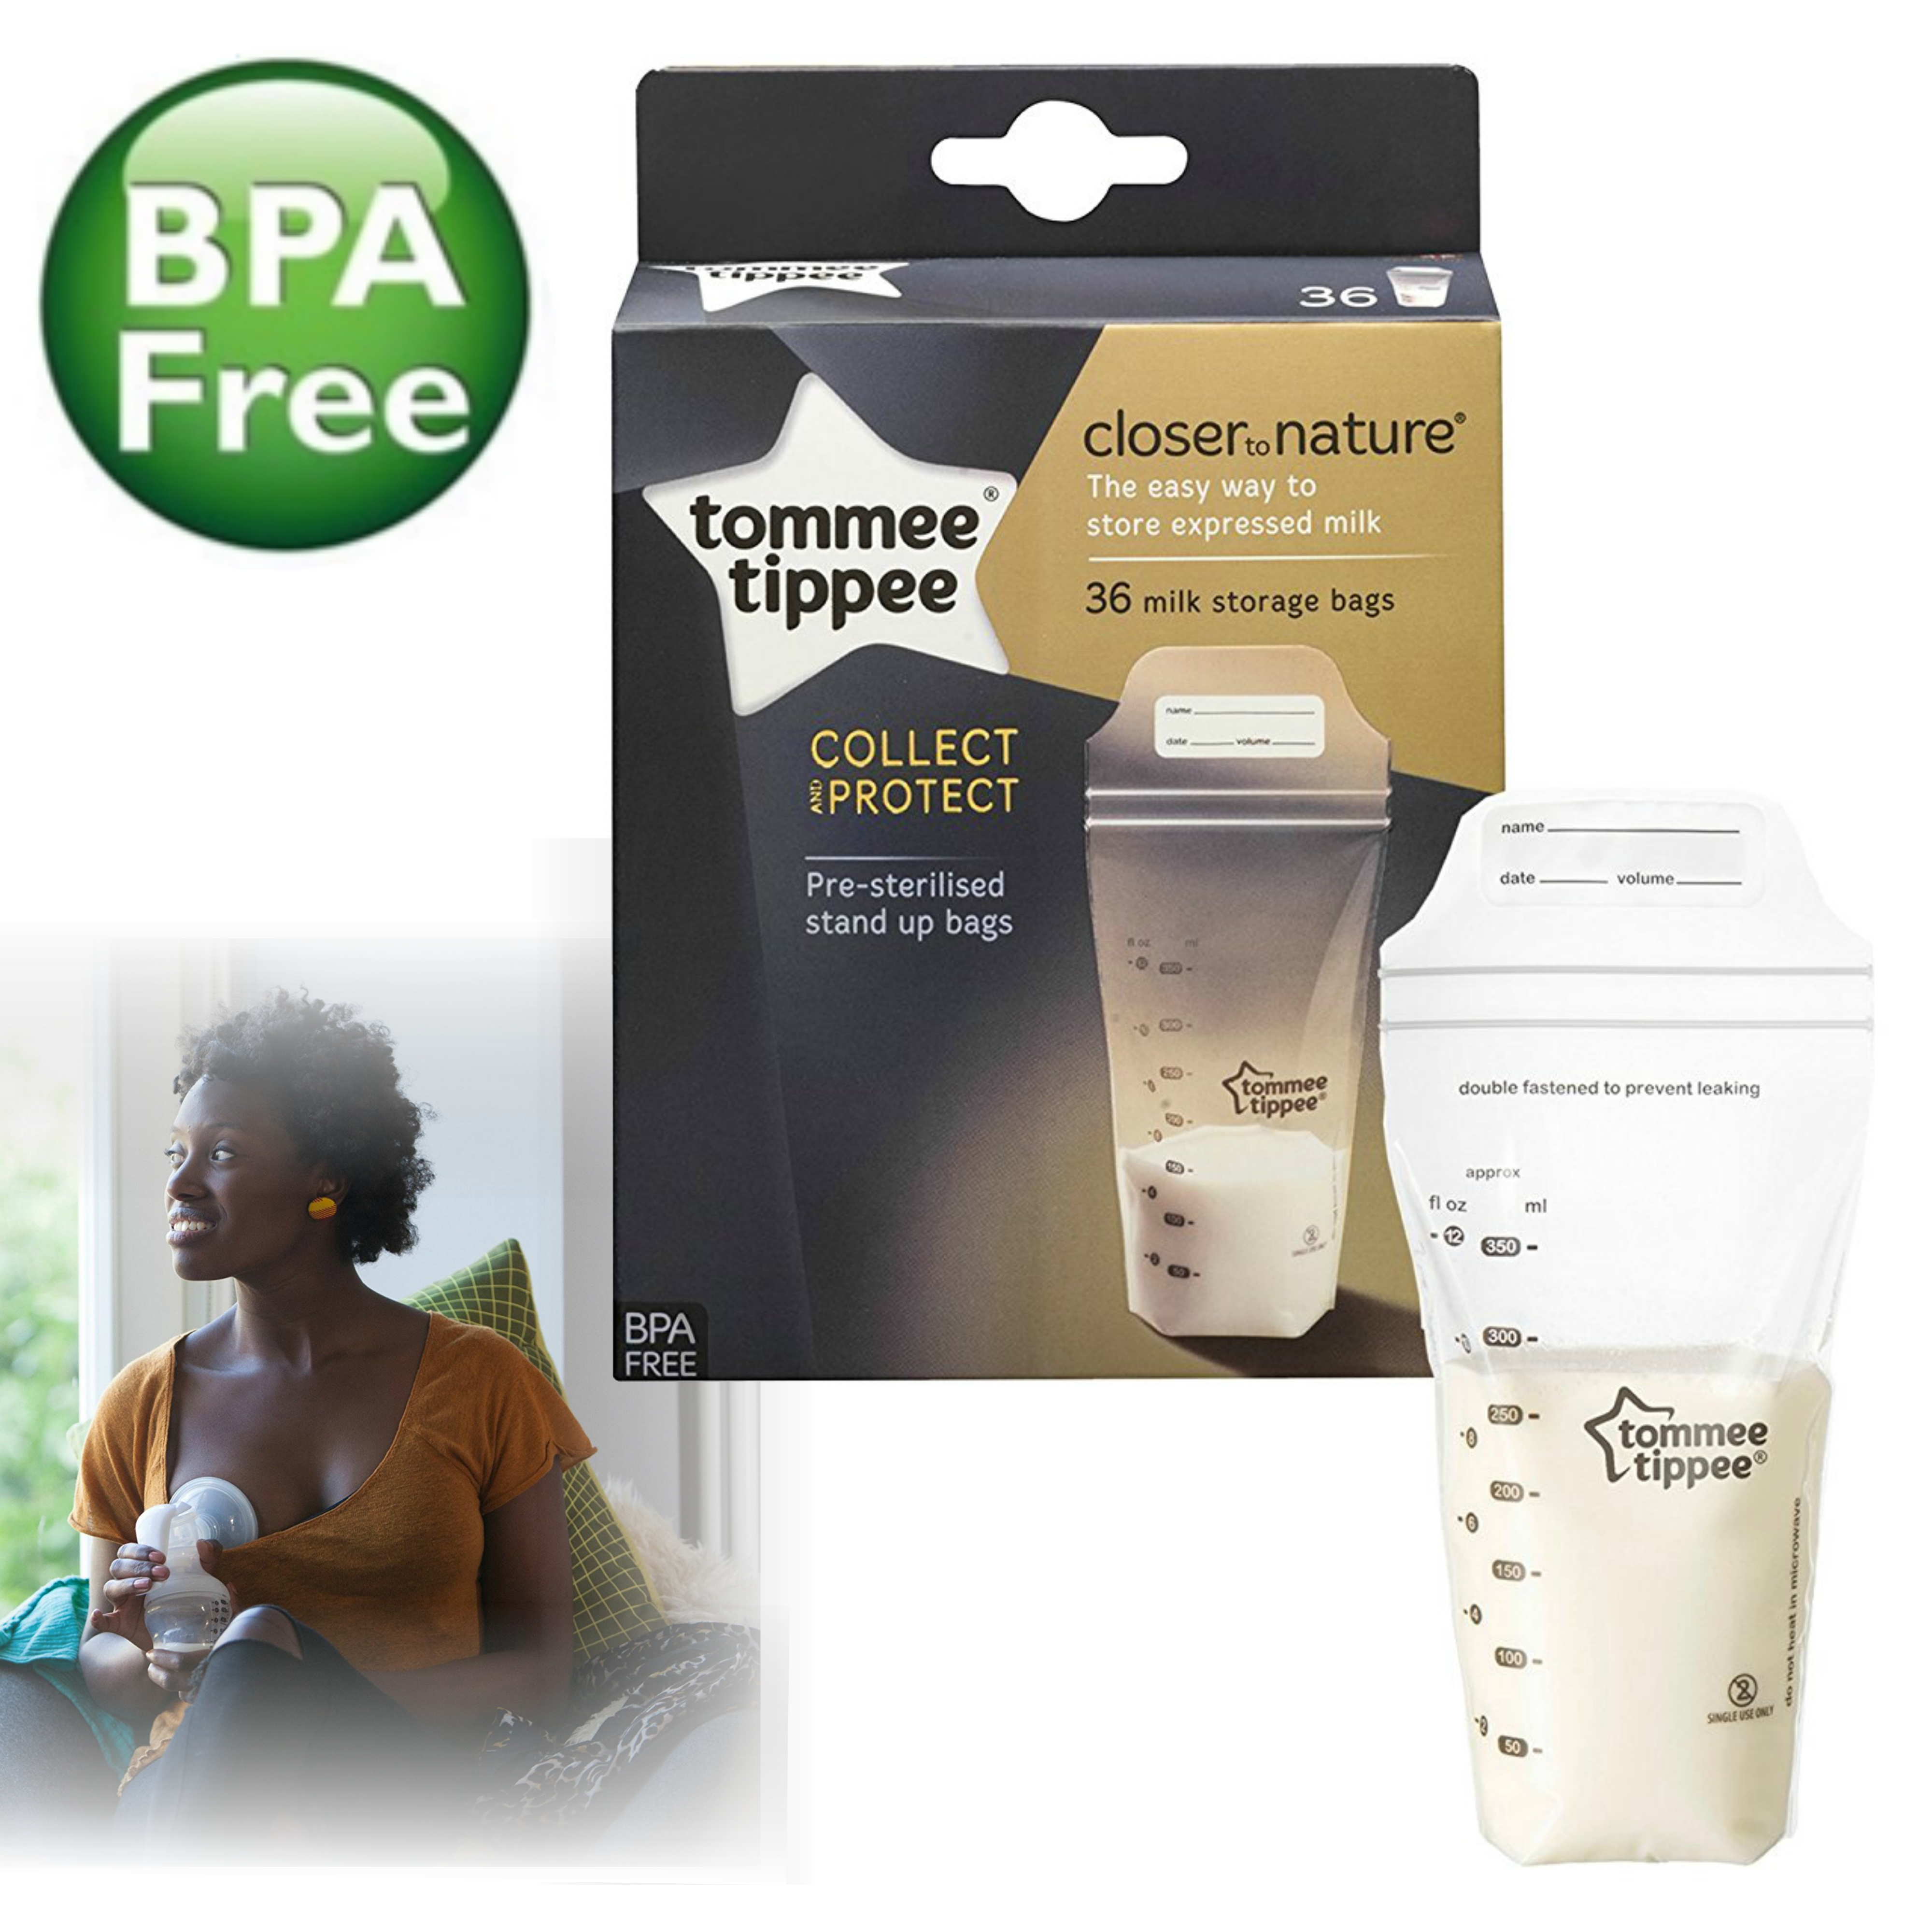 Tommee Tippee Breast Milk Storage Bags | Pre-sterilised | Closer to Nature | 36 Bags